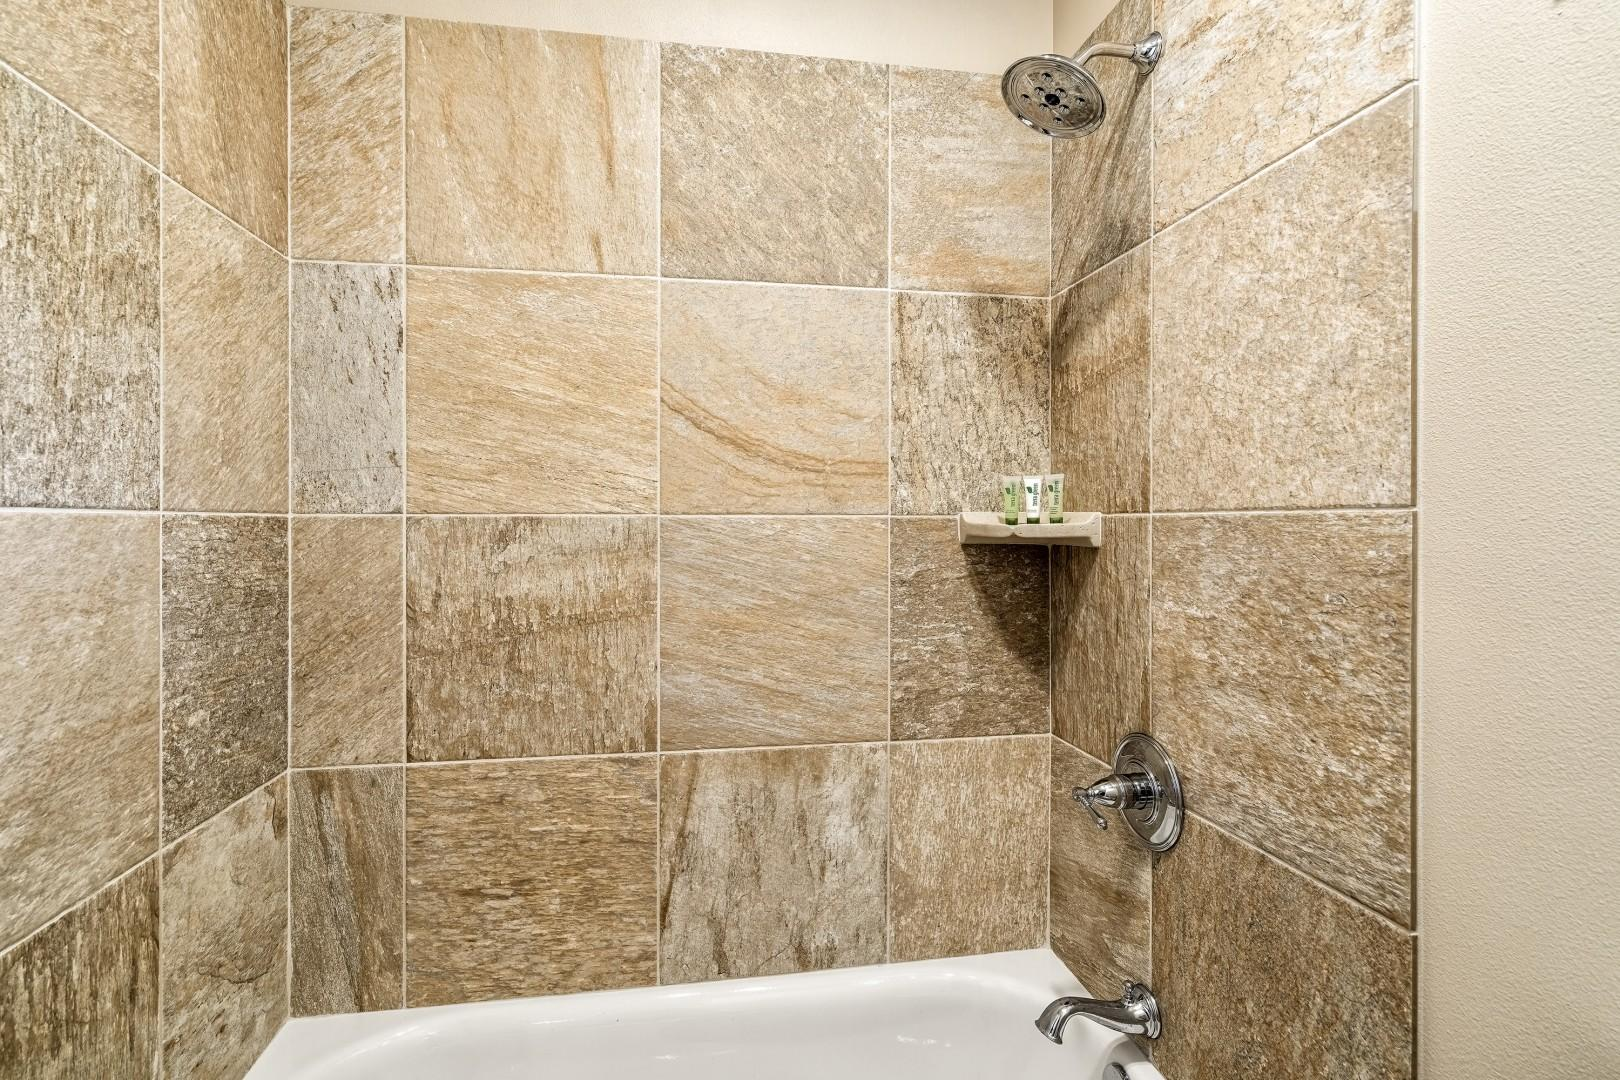 Tub / shower combo in the guest bathroom